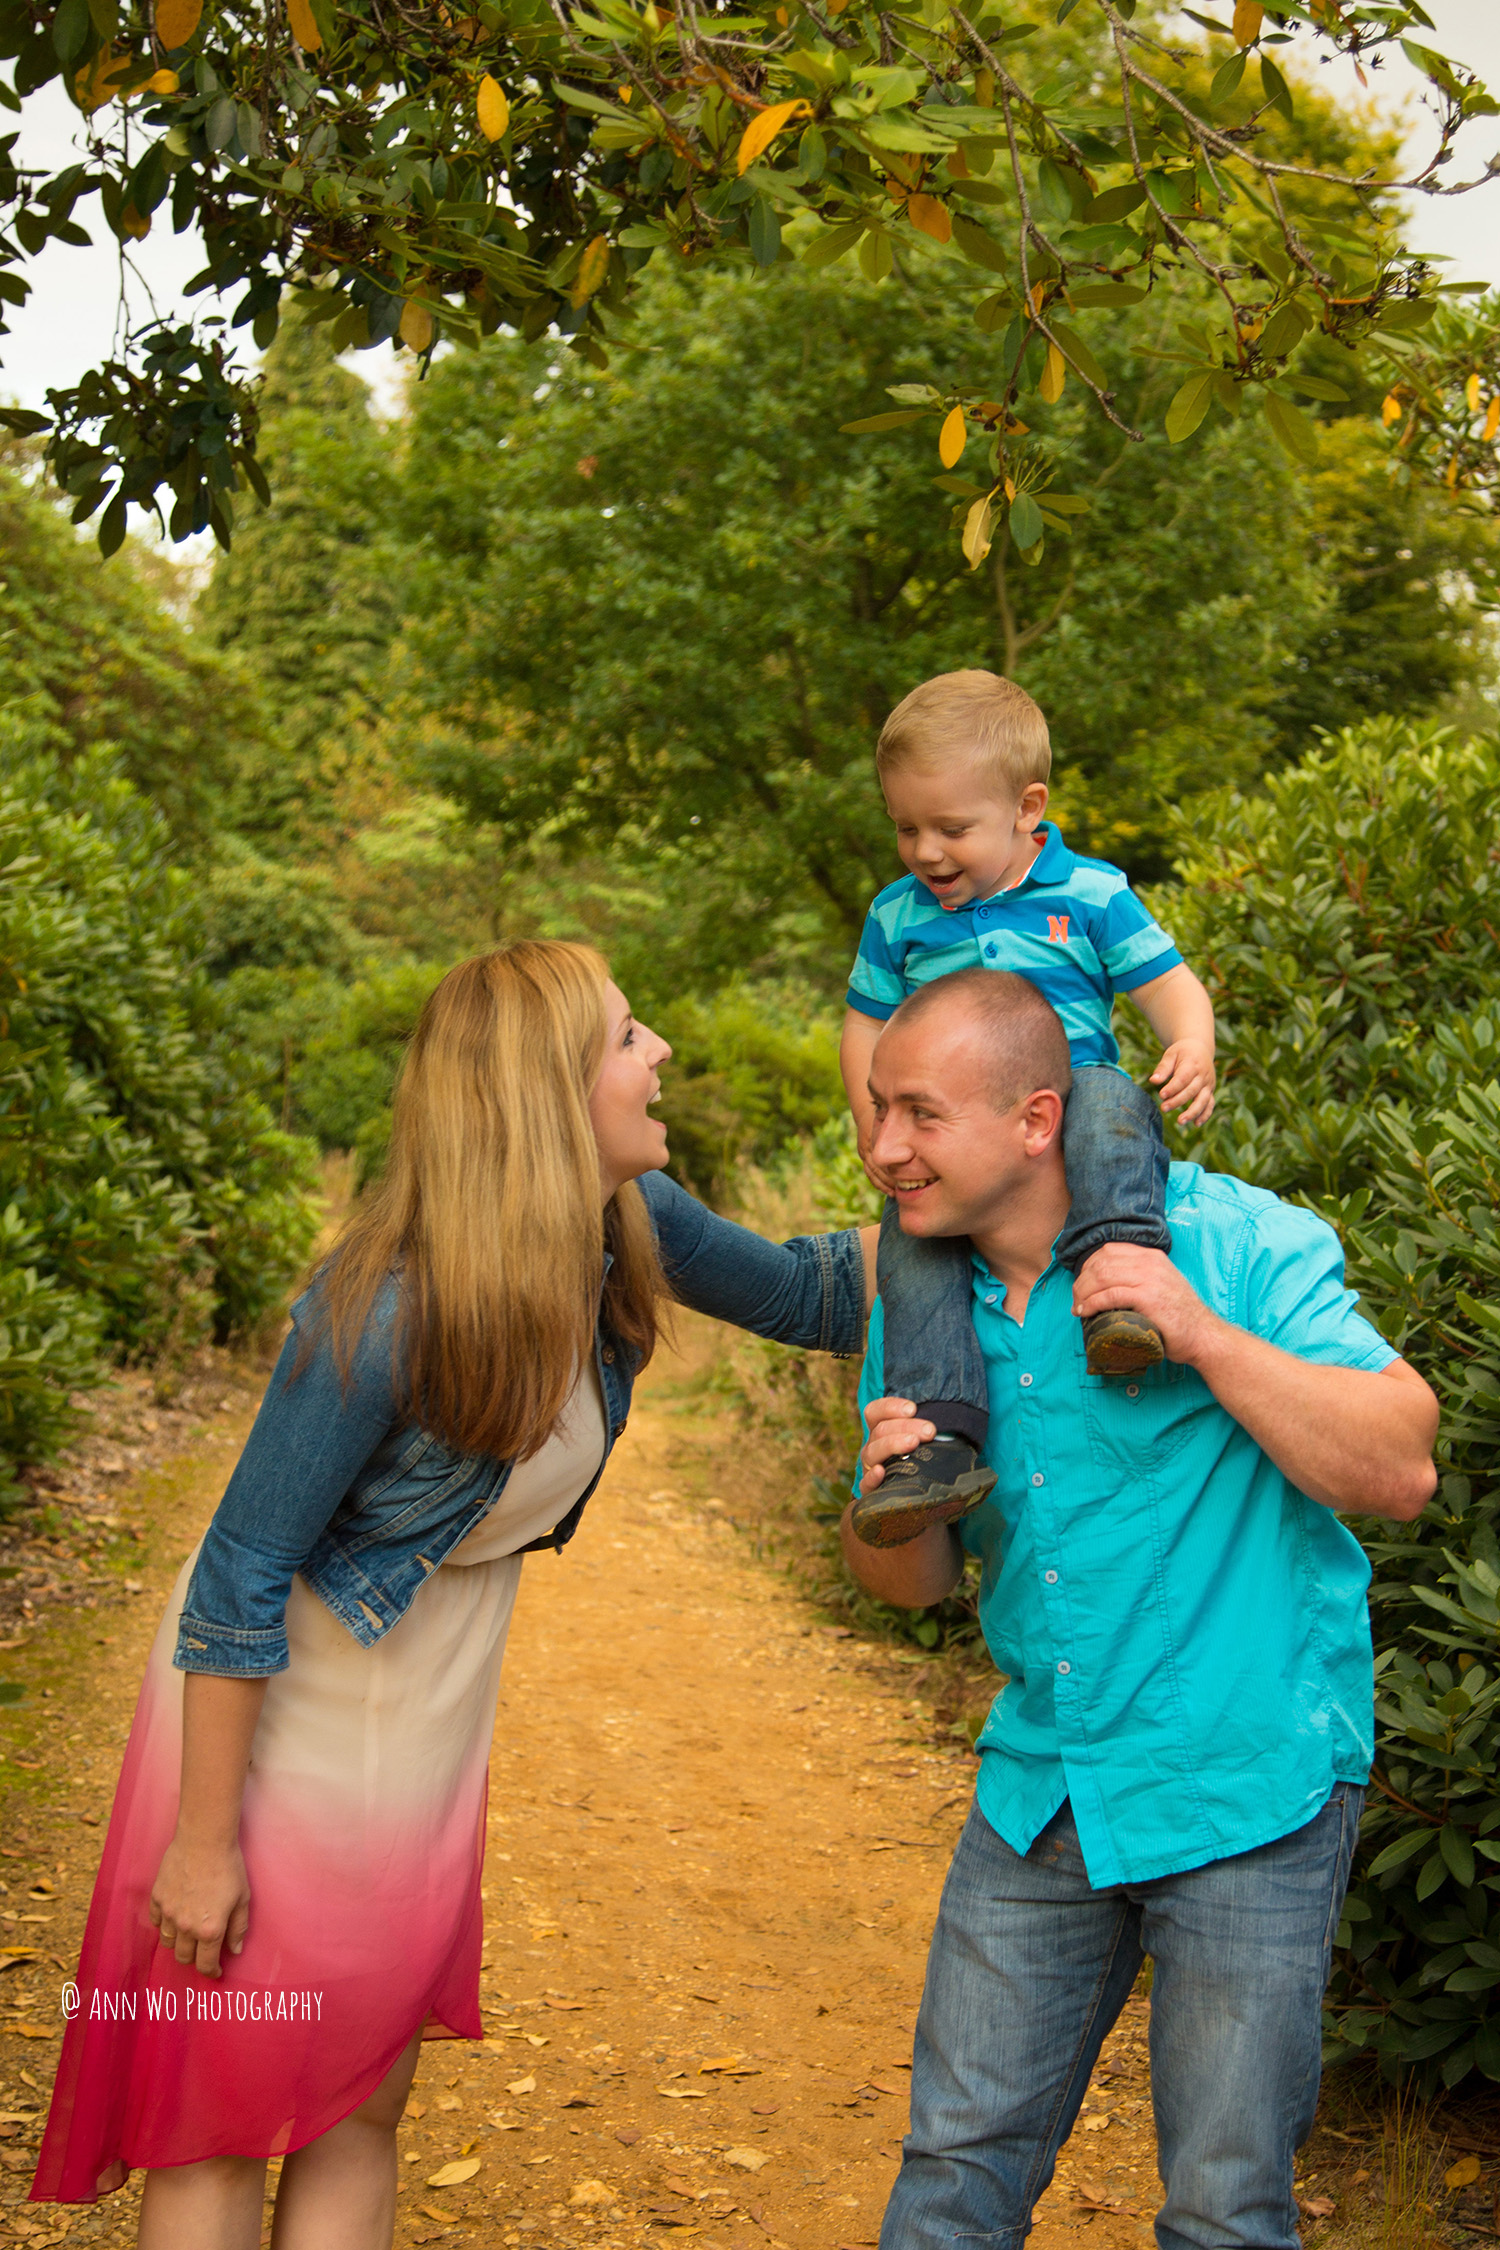 family-photography-ann-wo-berkshire-lifestyle-outdoor04.jpg